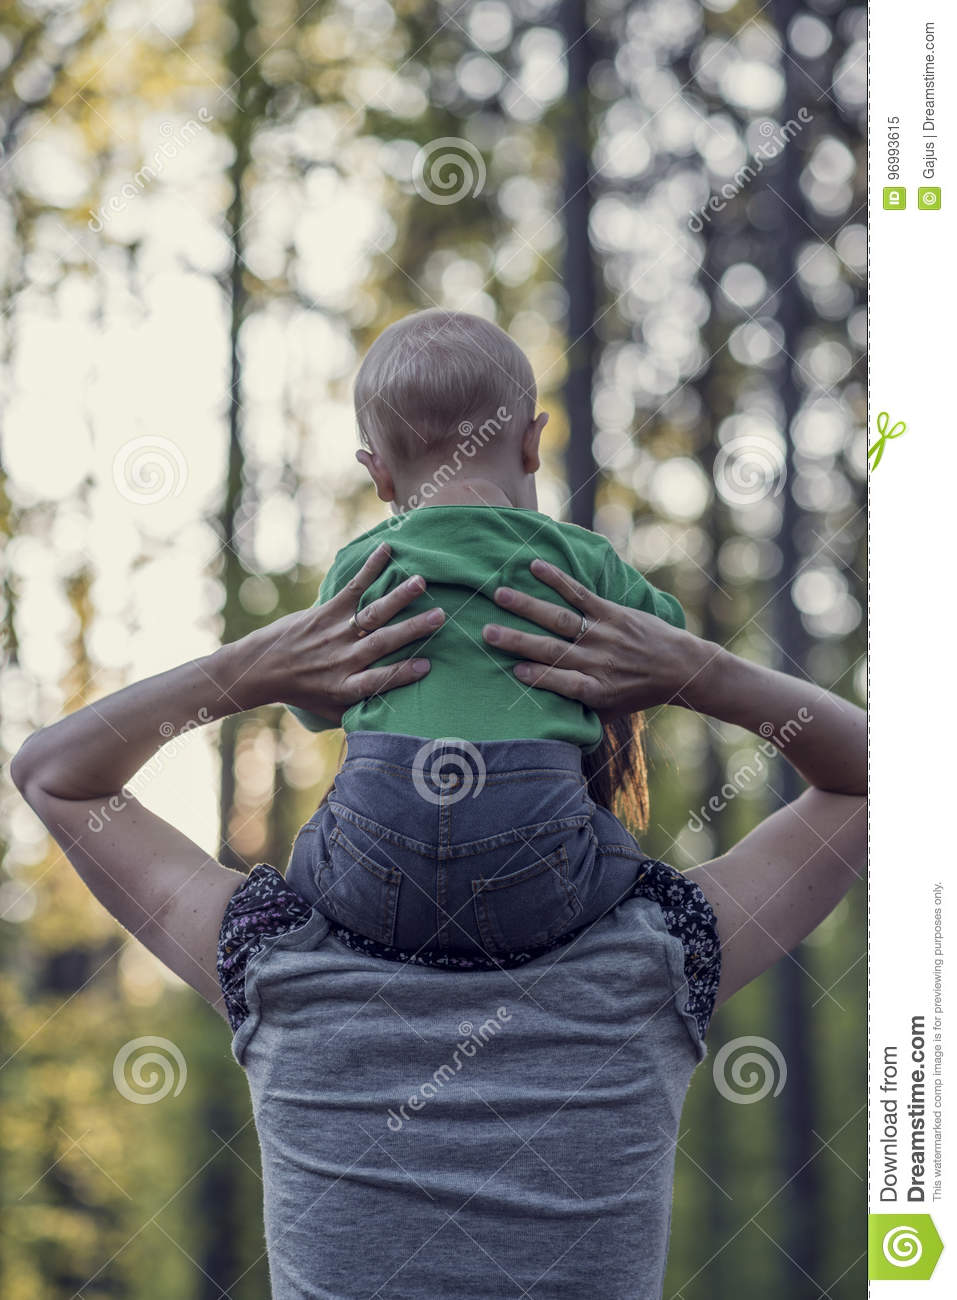 Retro image of a mother walking with her baby son